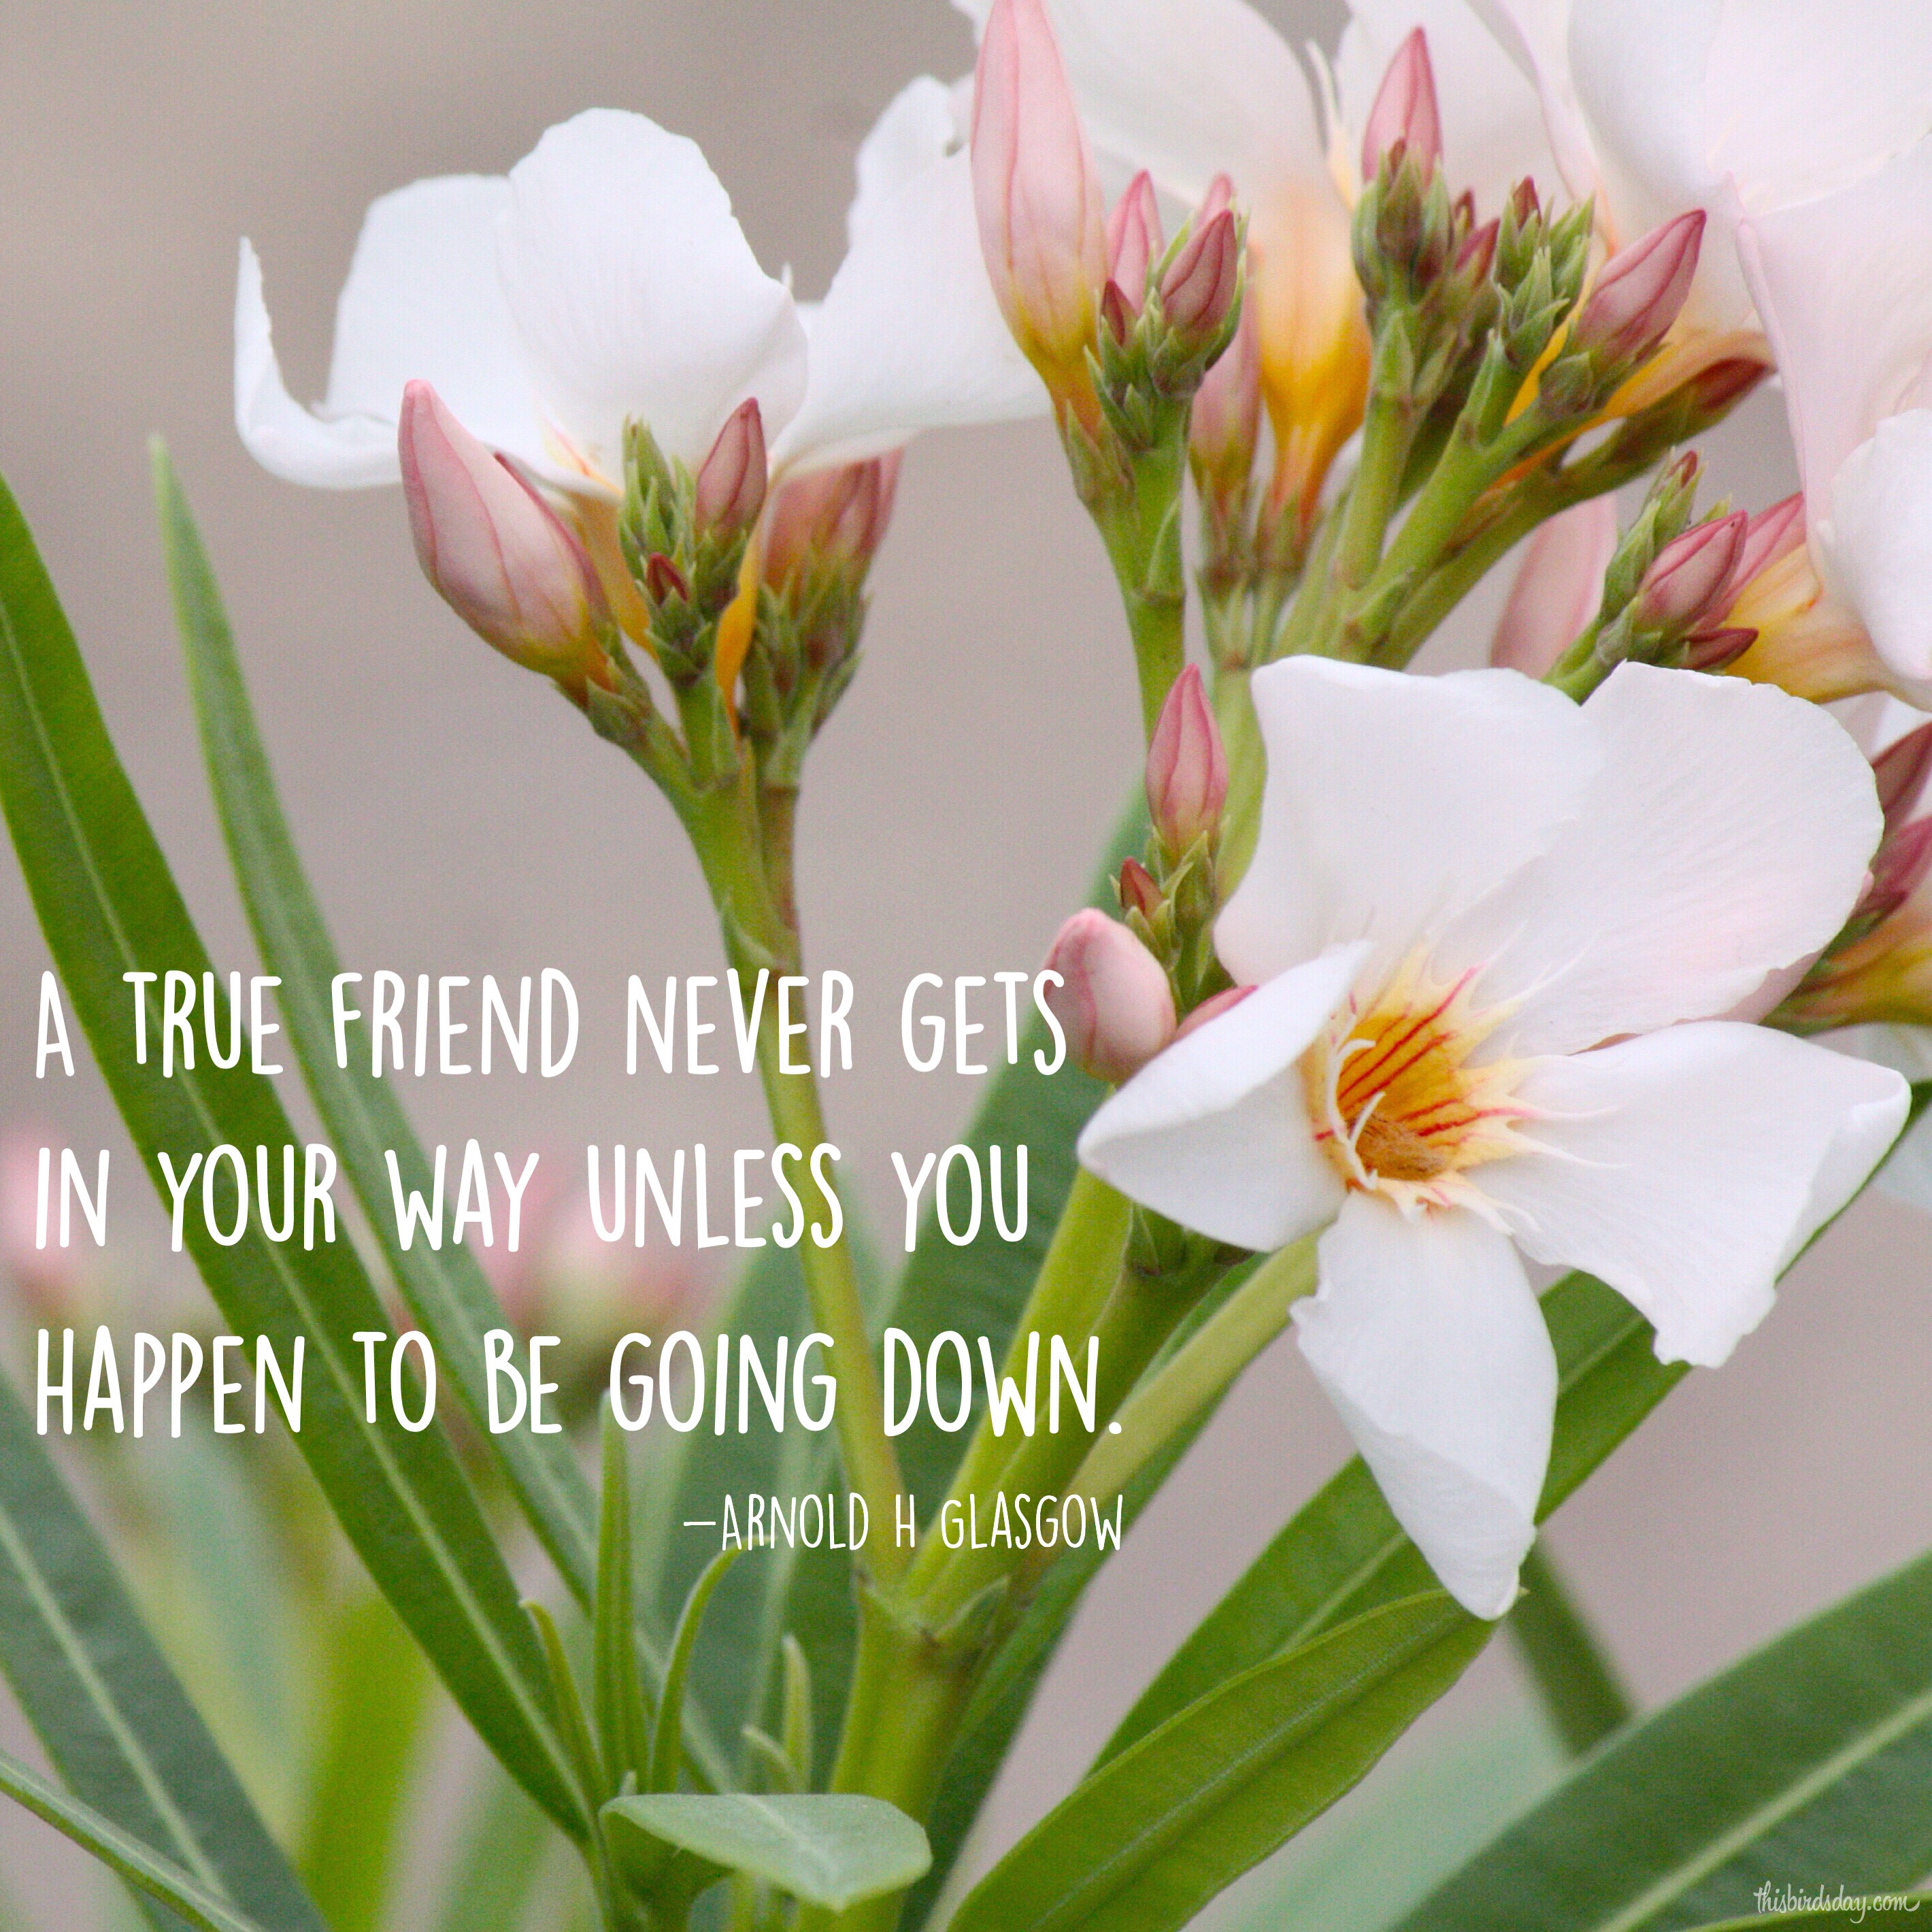 """""""A true friend never gets in your way unless you happen to be going down."""" Arnold H. Glasgow Photo copyright Sheri Landry"""